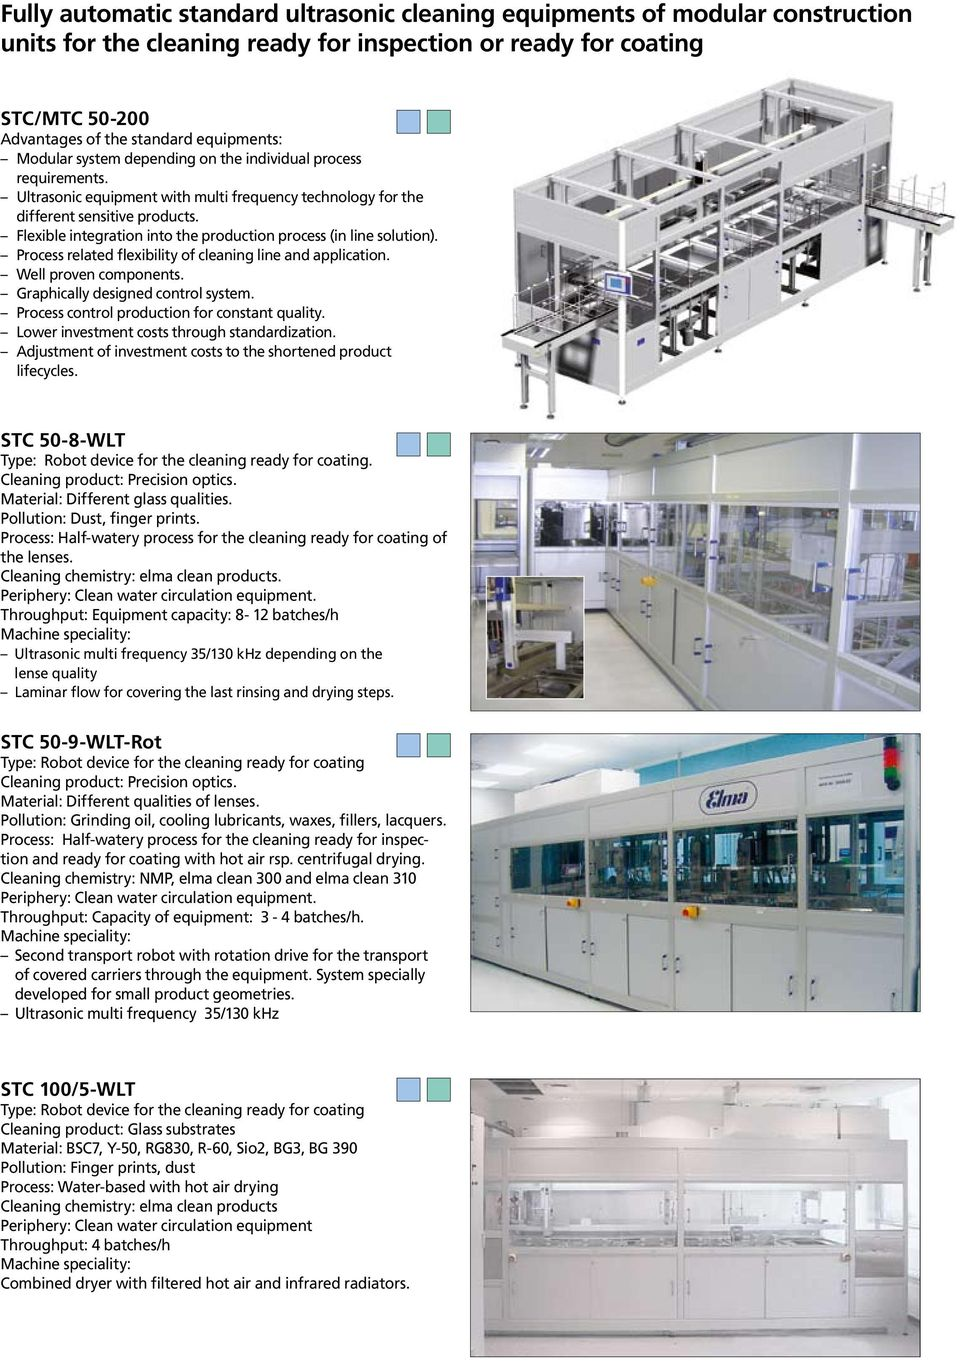 Flexible integration into the production process (in line solution). Process related flexibility of cleaning line and application. Well proven components. Graphically designed control system.